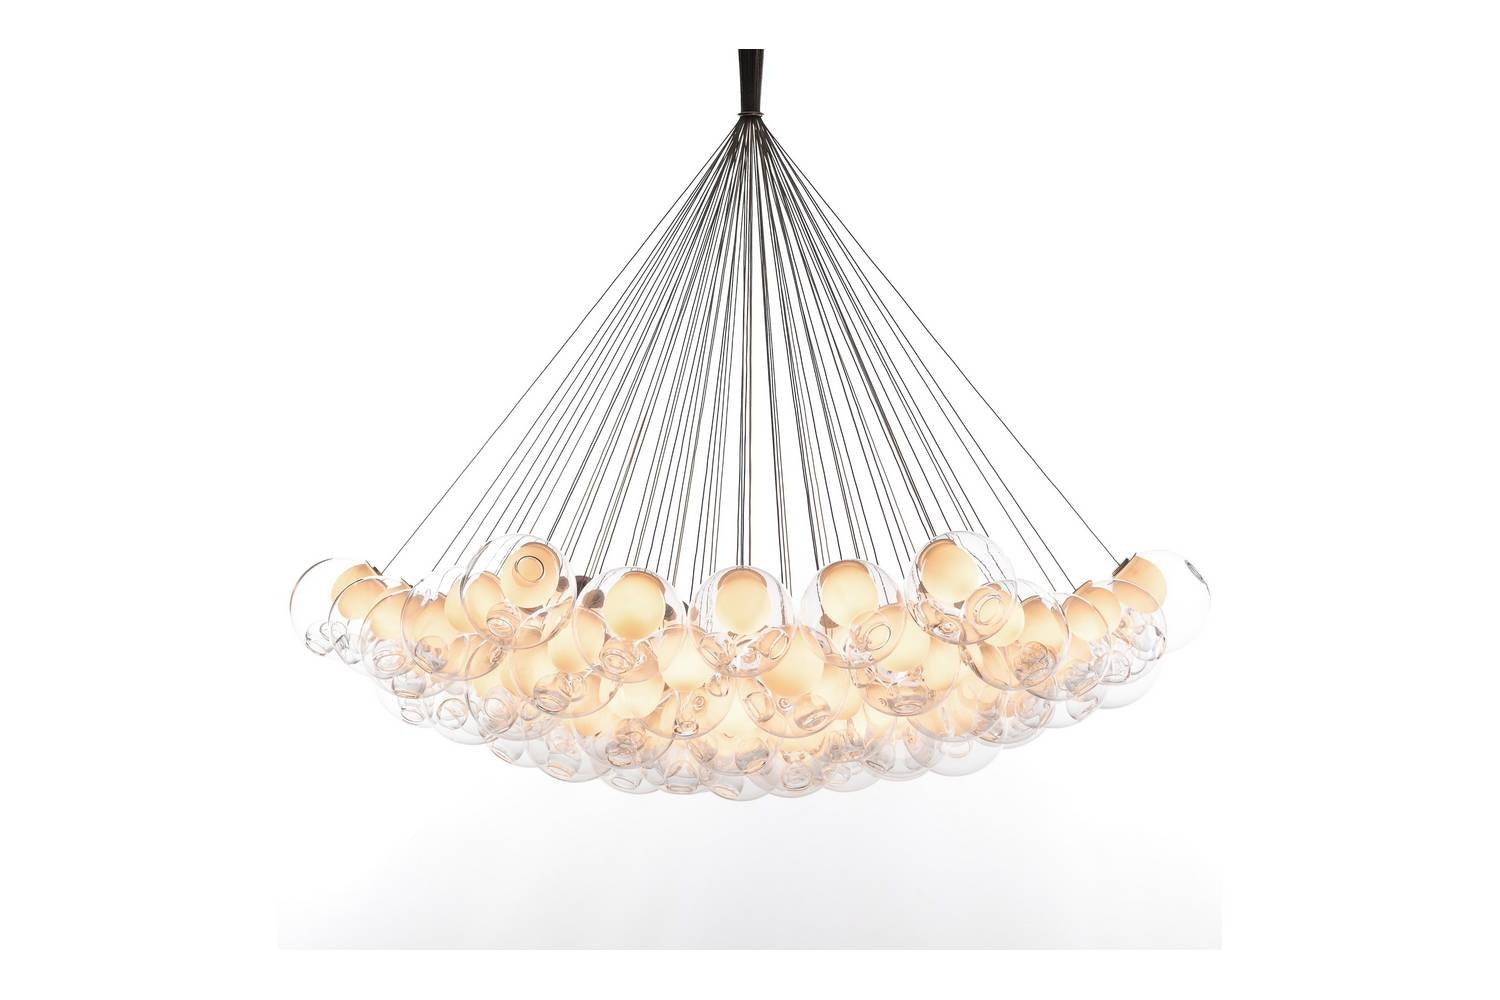 28.61 Cluster Suspension Lamp by Omer Arbel for Bocci